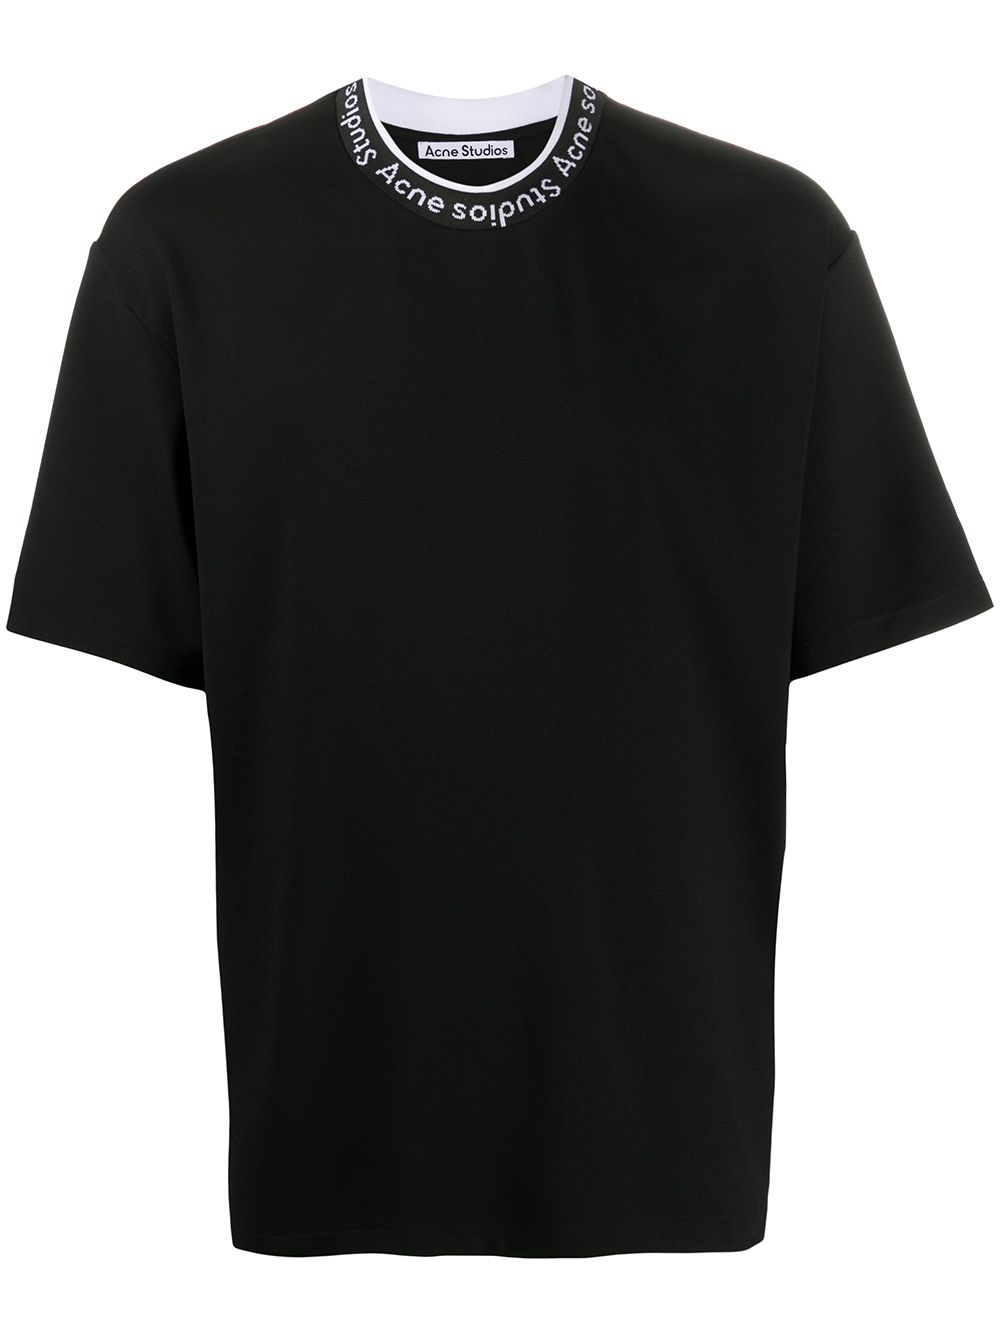 Acne studios t-shirt black